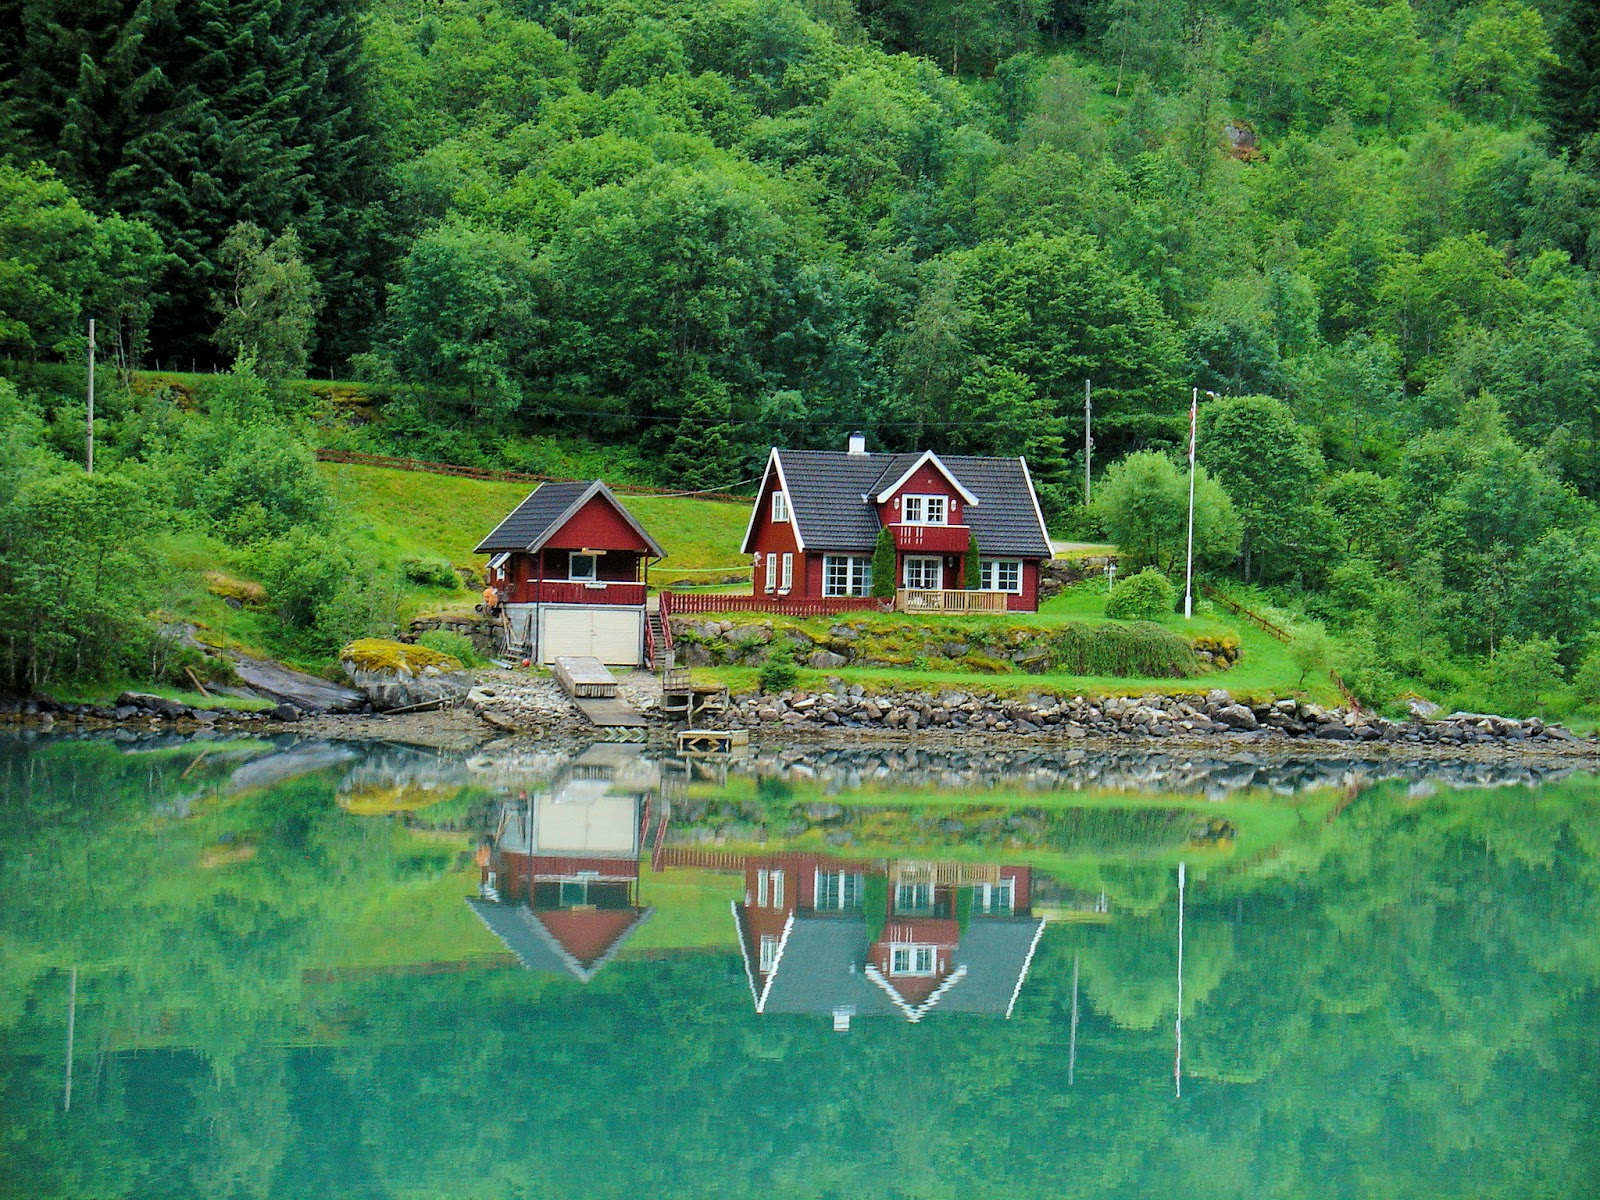 Enchanting Fjærland, Norway. All photography is the property of EuroTravelogue™. Unauthorized use is prohibited.